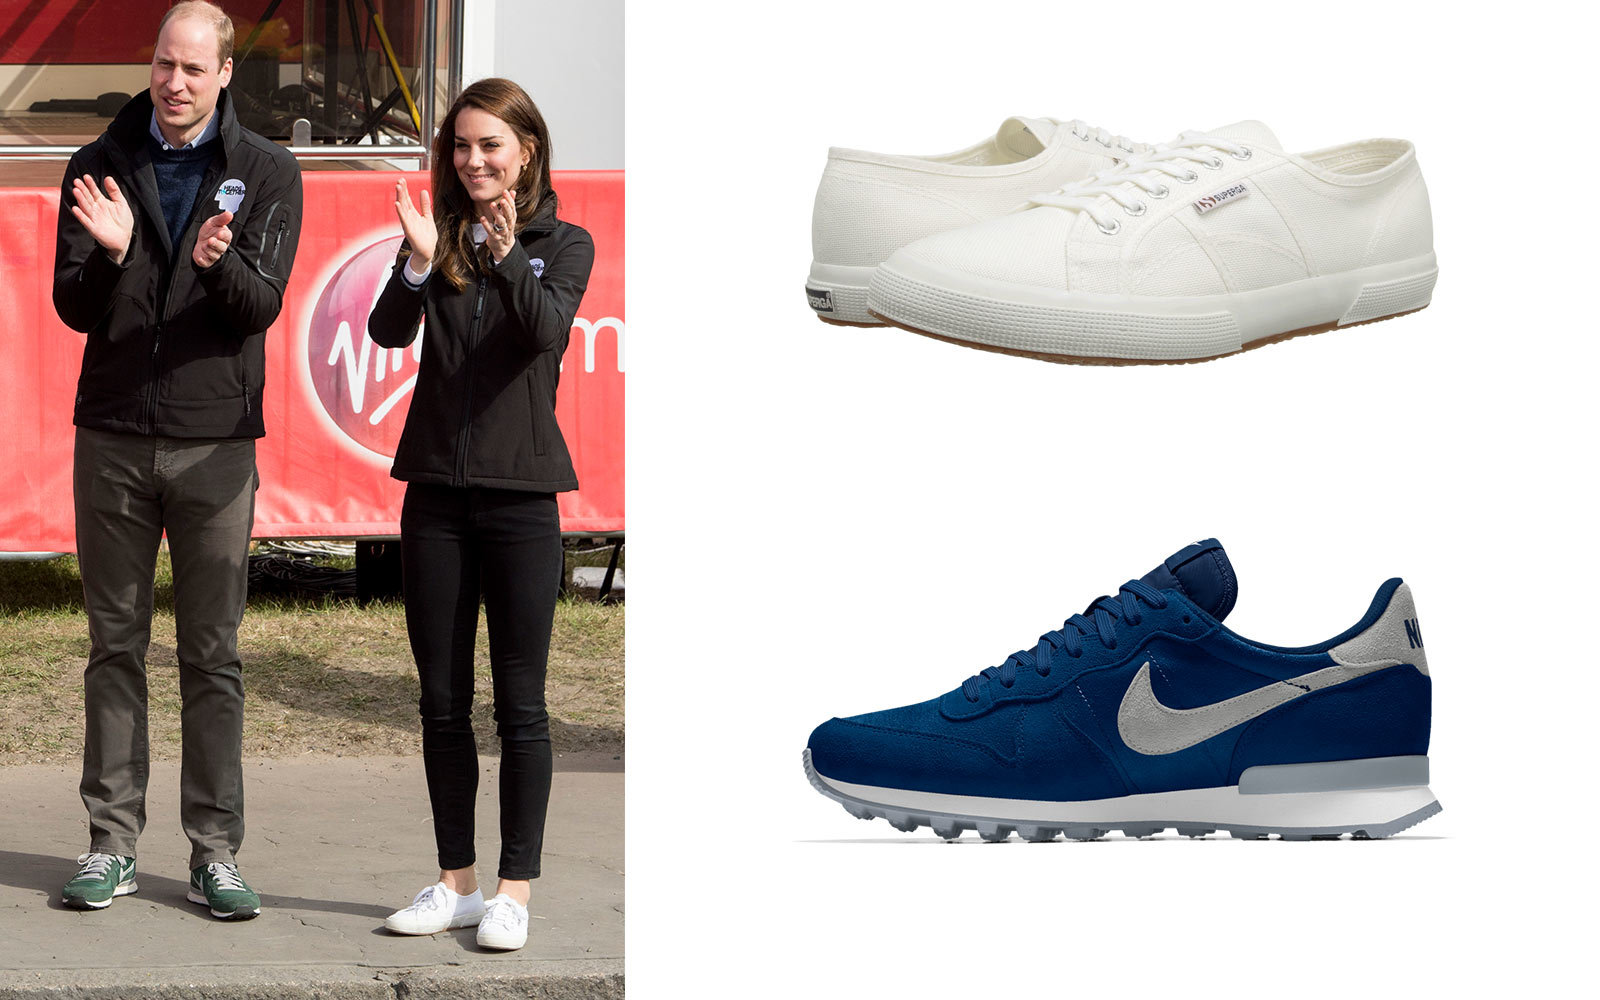 William and Kate Middleton sneakers